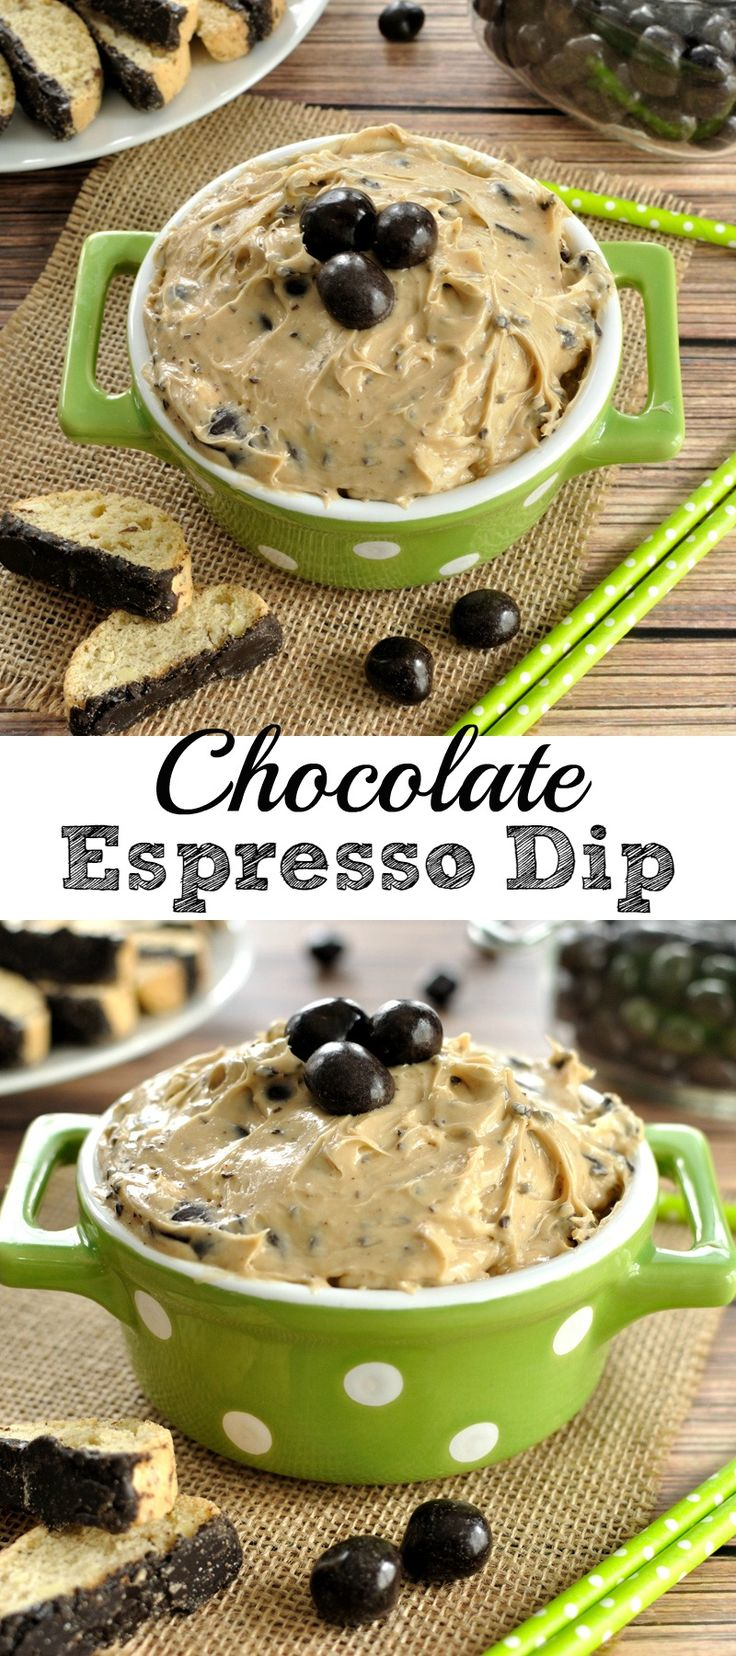 5 ingredient chocolate espresso dip! Easy dip recipe makes a great appetizer or dessert for a brunch or party.